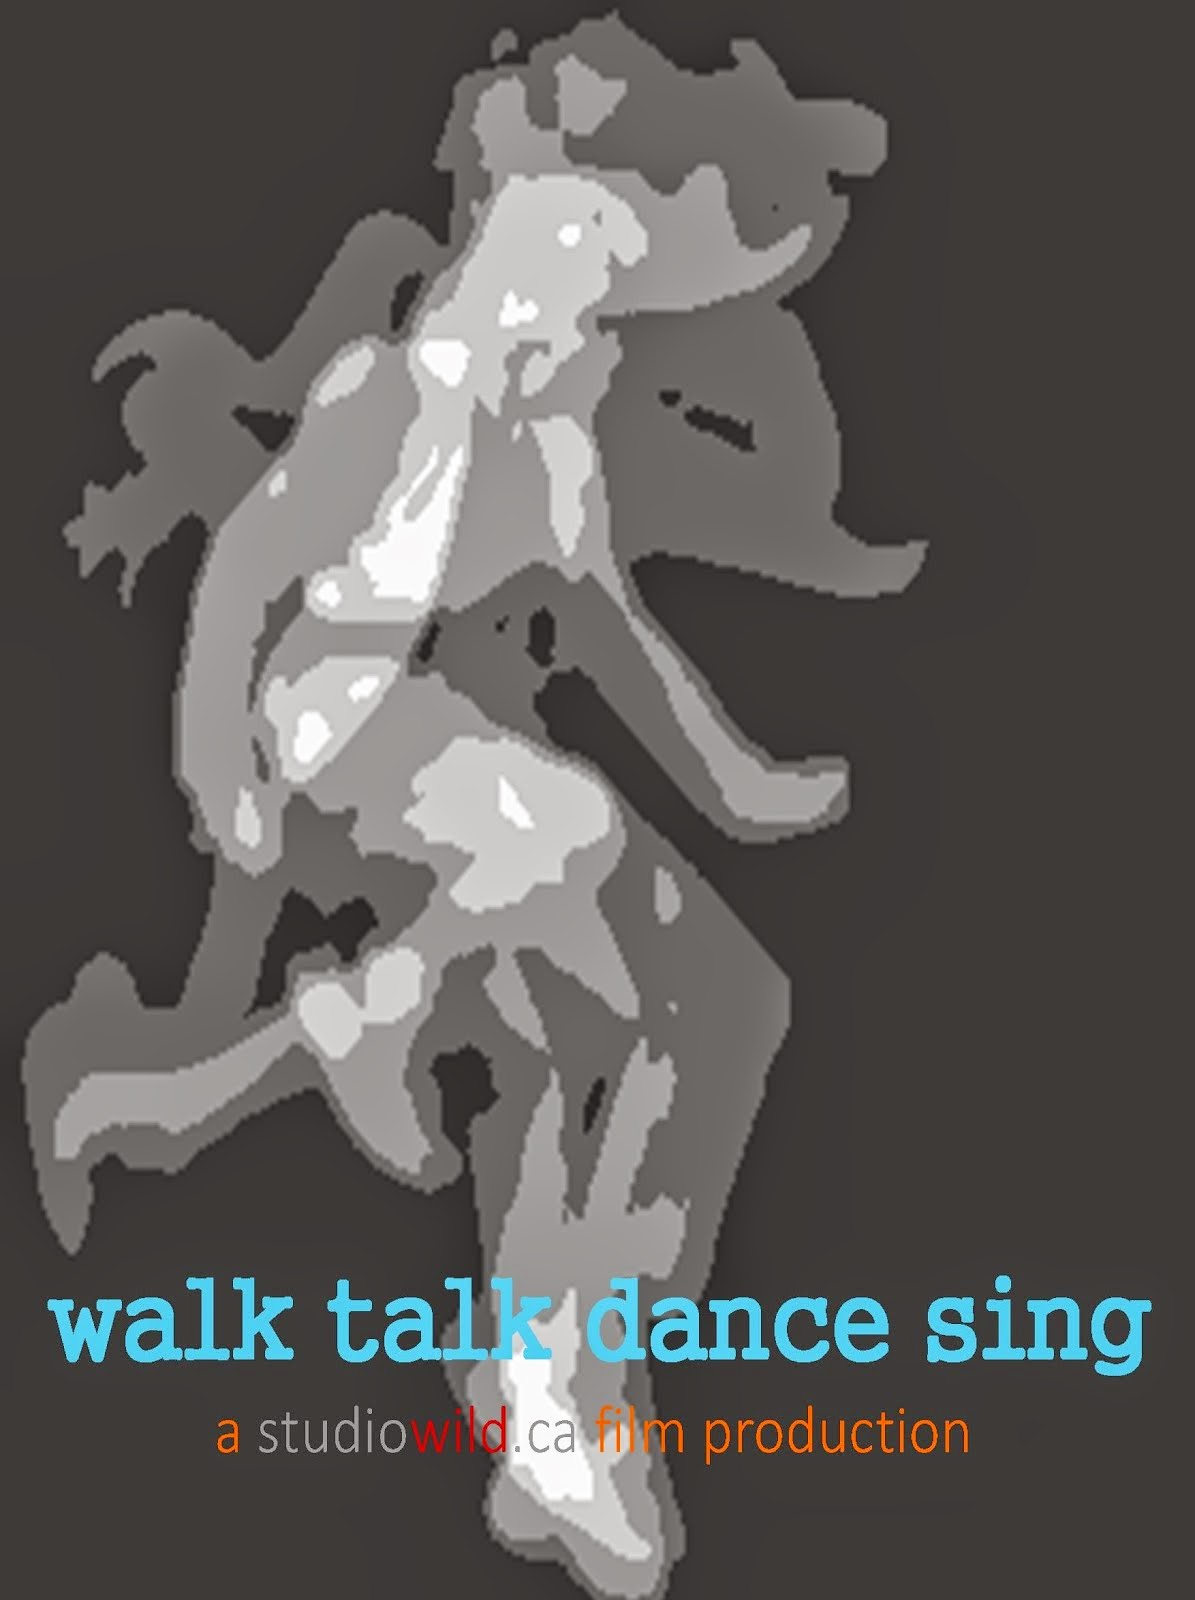 walk talk dance sing SOUNDTRACK